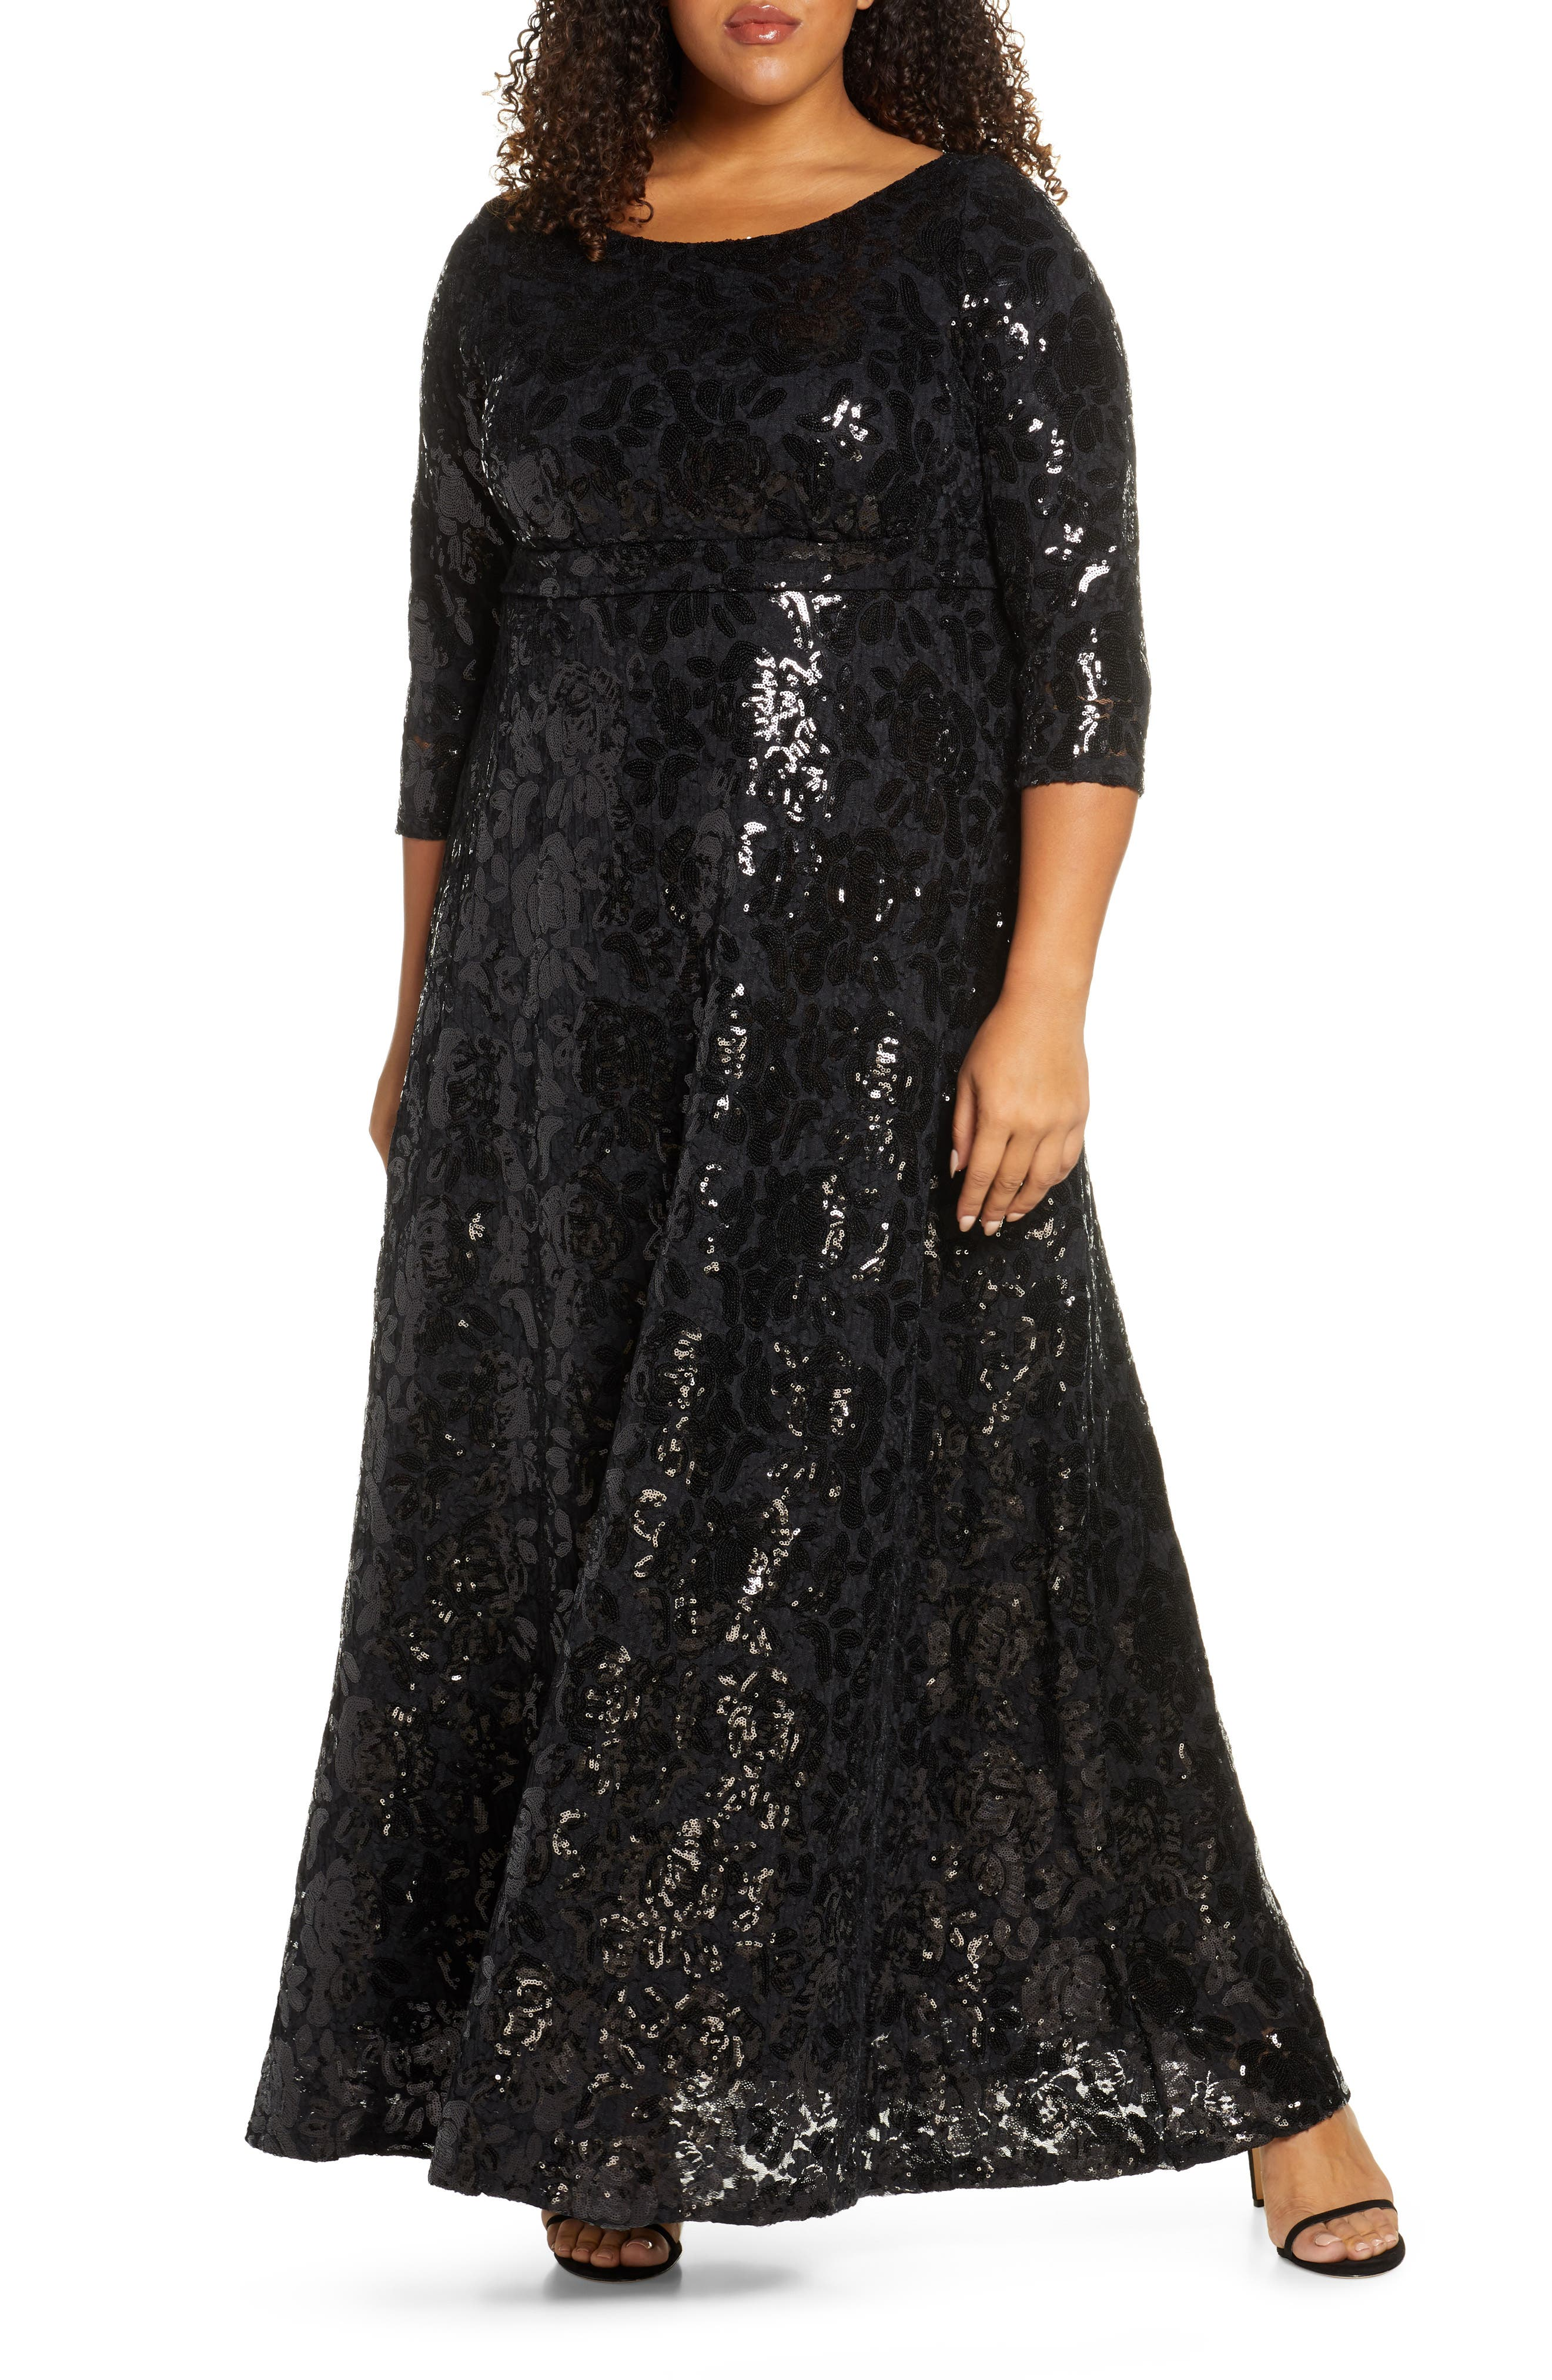 70s Prom, Formal, Evening, Party Dresses Plus Size Womens Kiyonna Socialite Sequin Floral Gown $348.00 AT vintagedancer.com